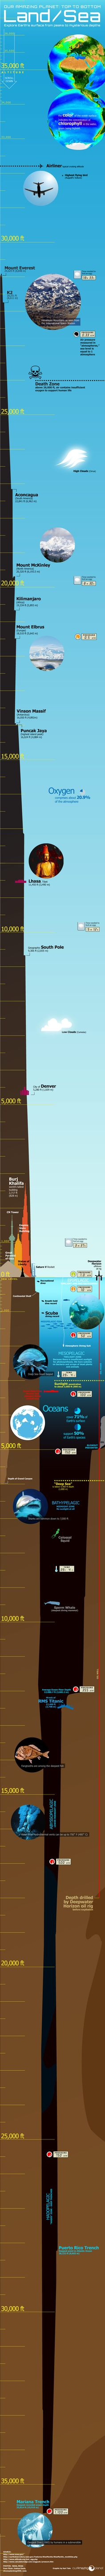 World's Tallest to Deepest #MadeMeThink